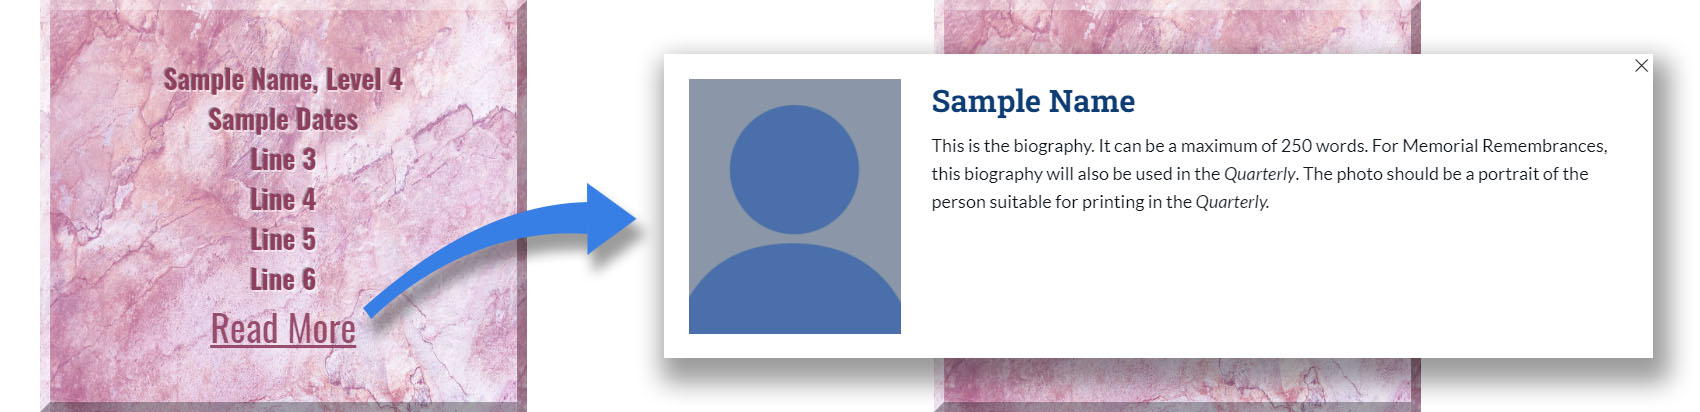 Sample of Level 4 tile with photo and biography